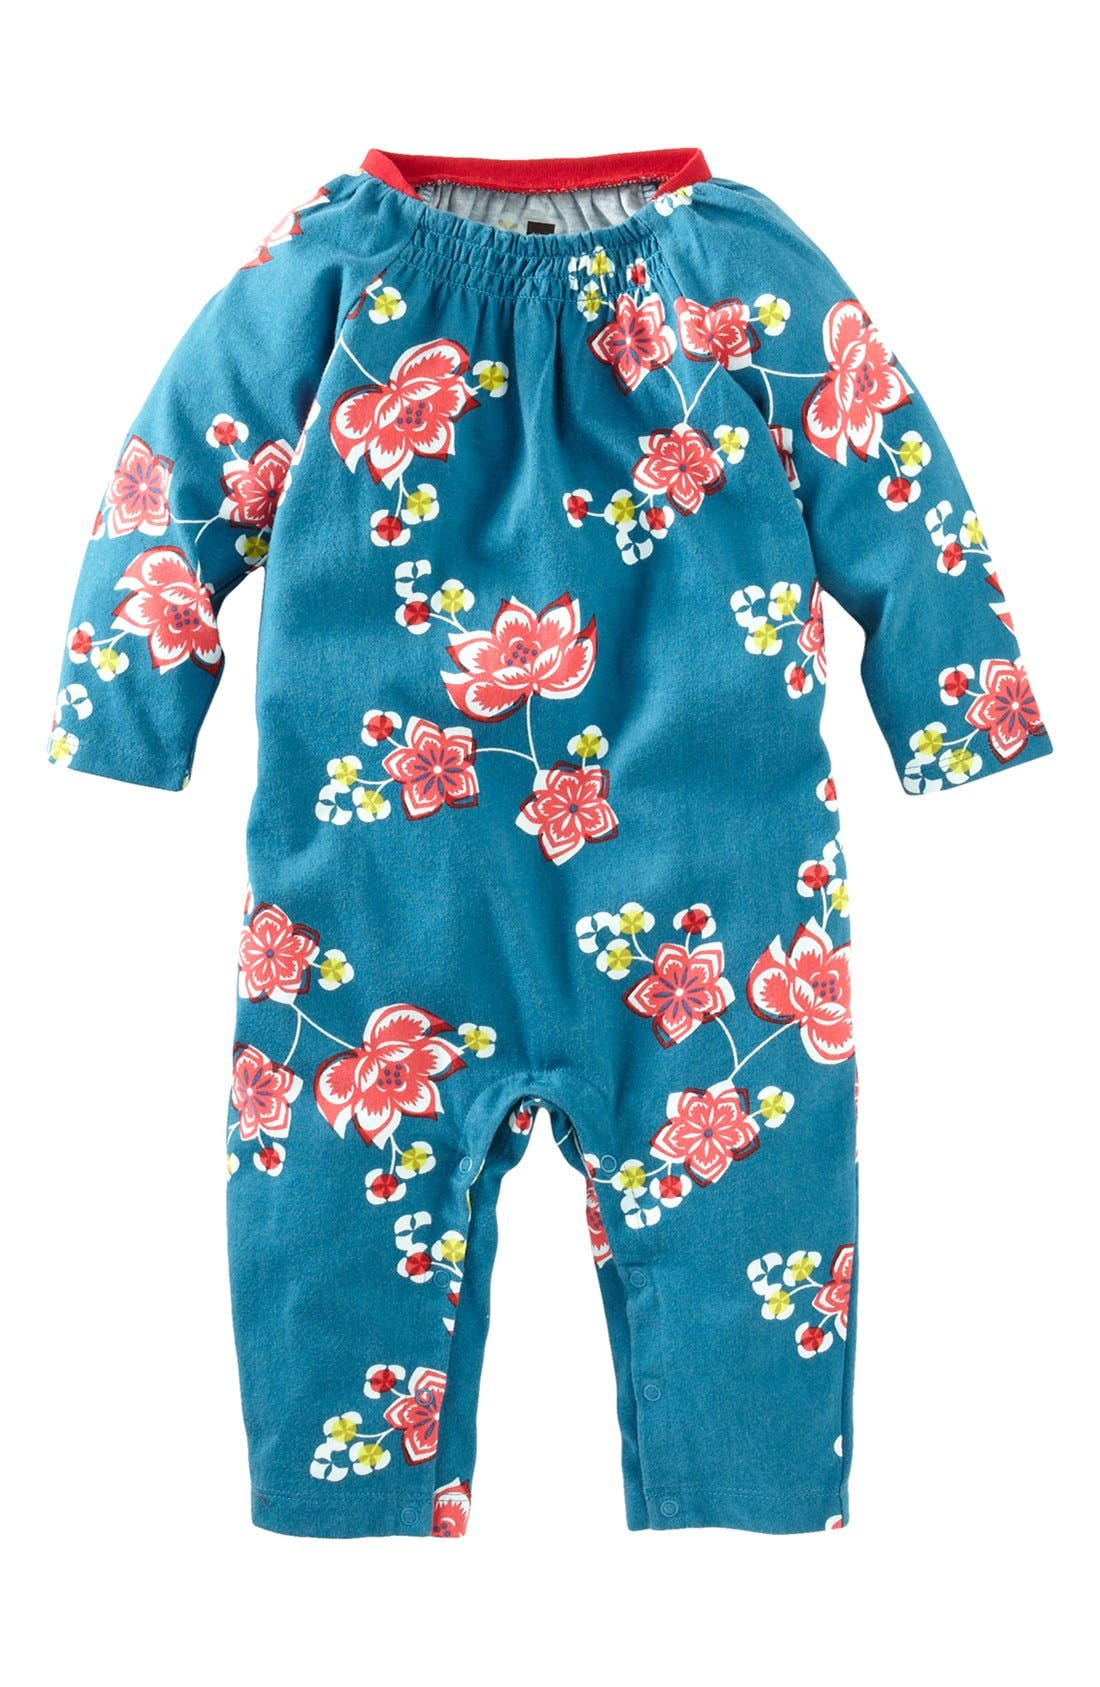 Main Image - Tea Collection 'Jianzhi' Romper (Baby Girls)